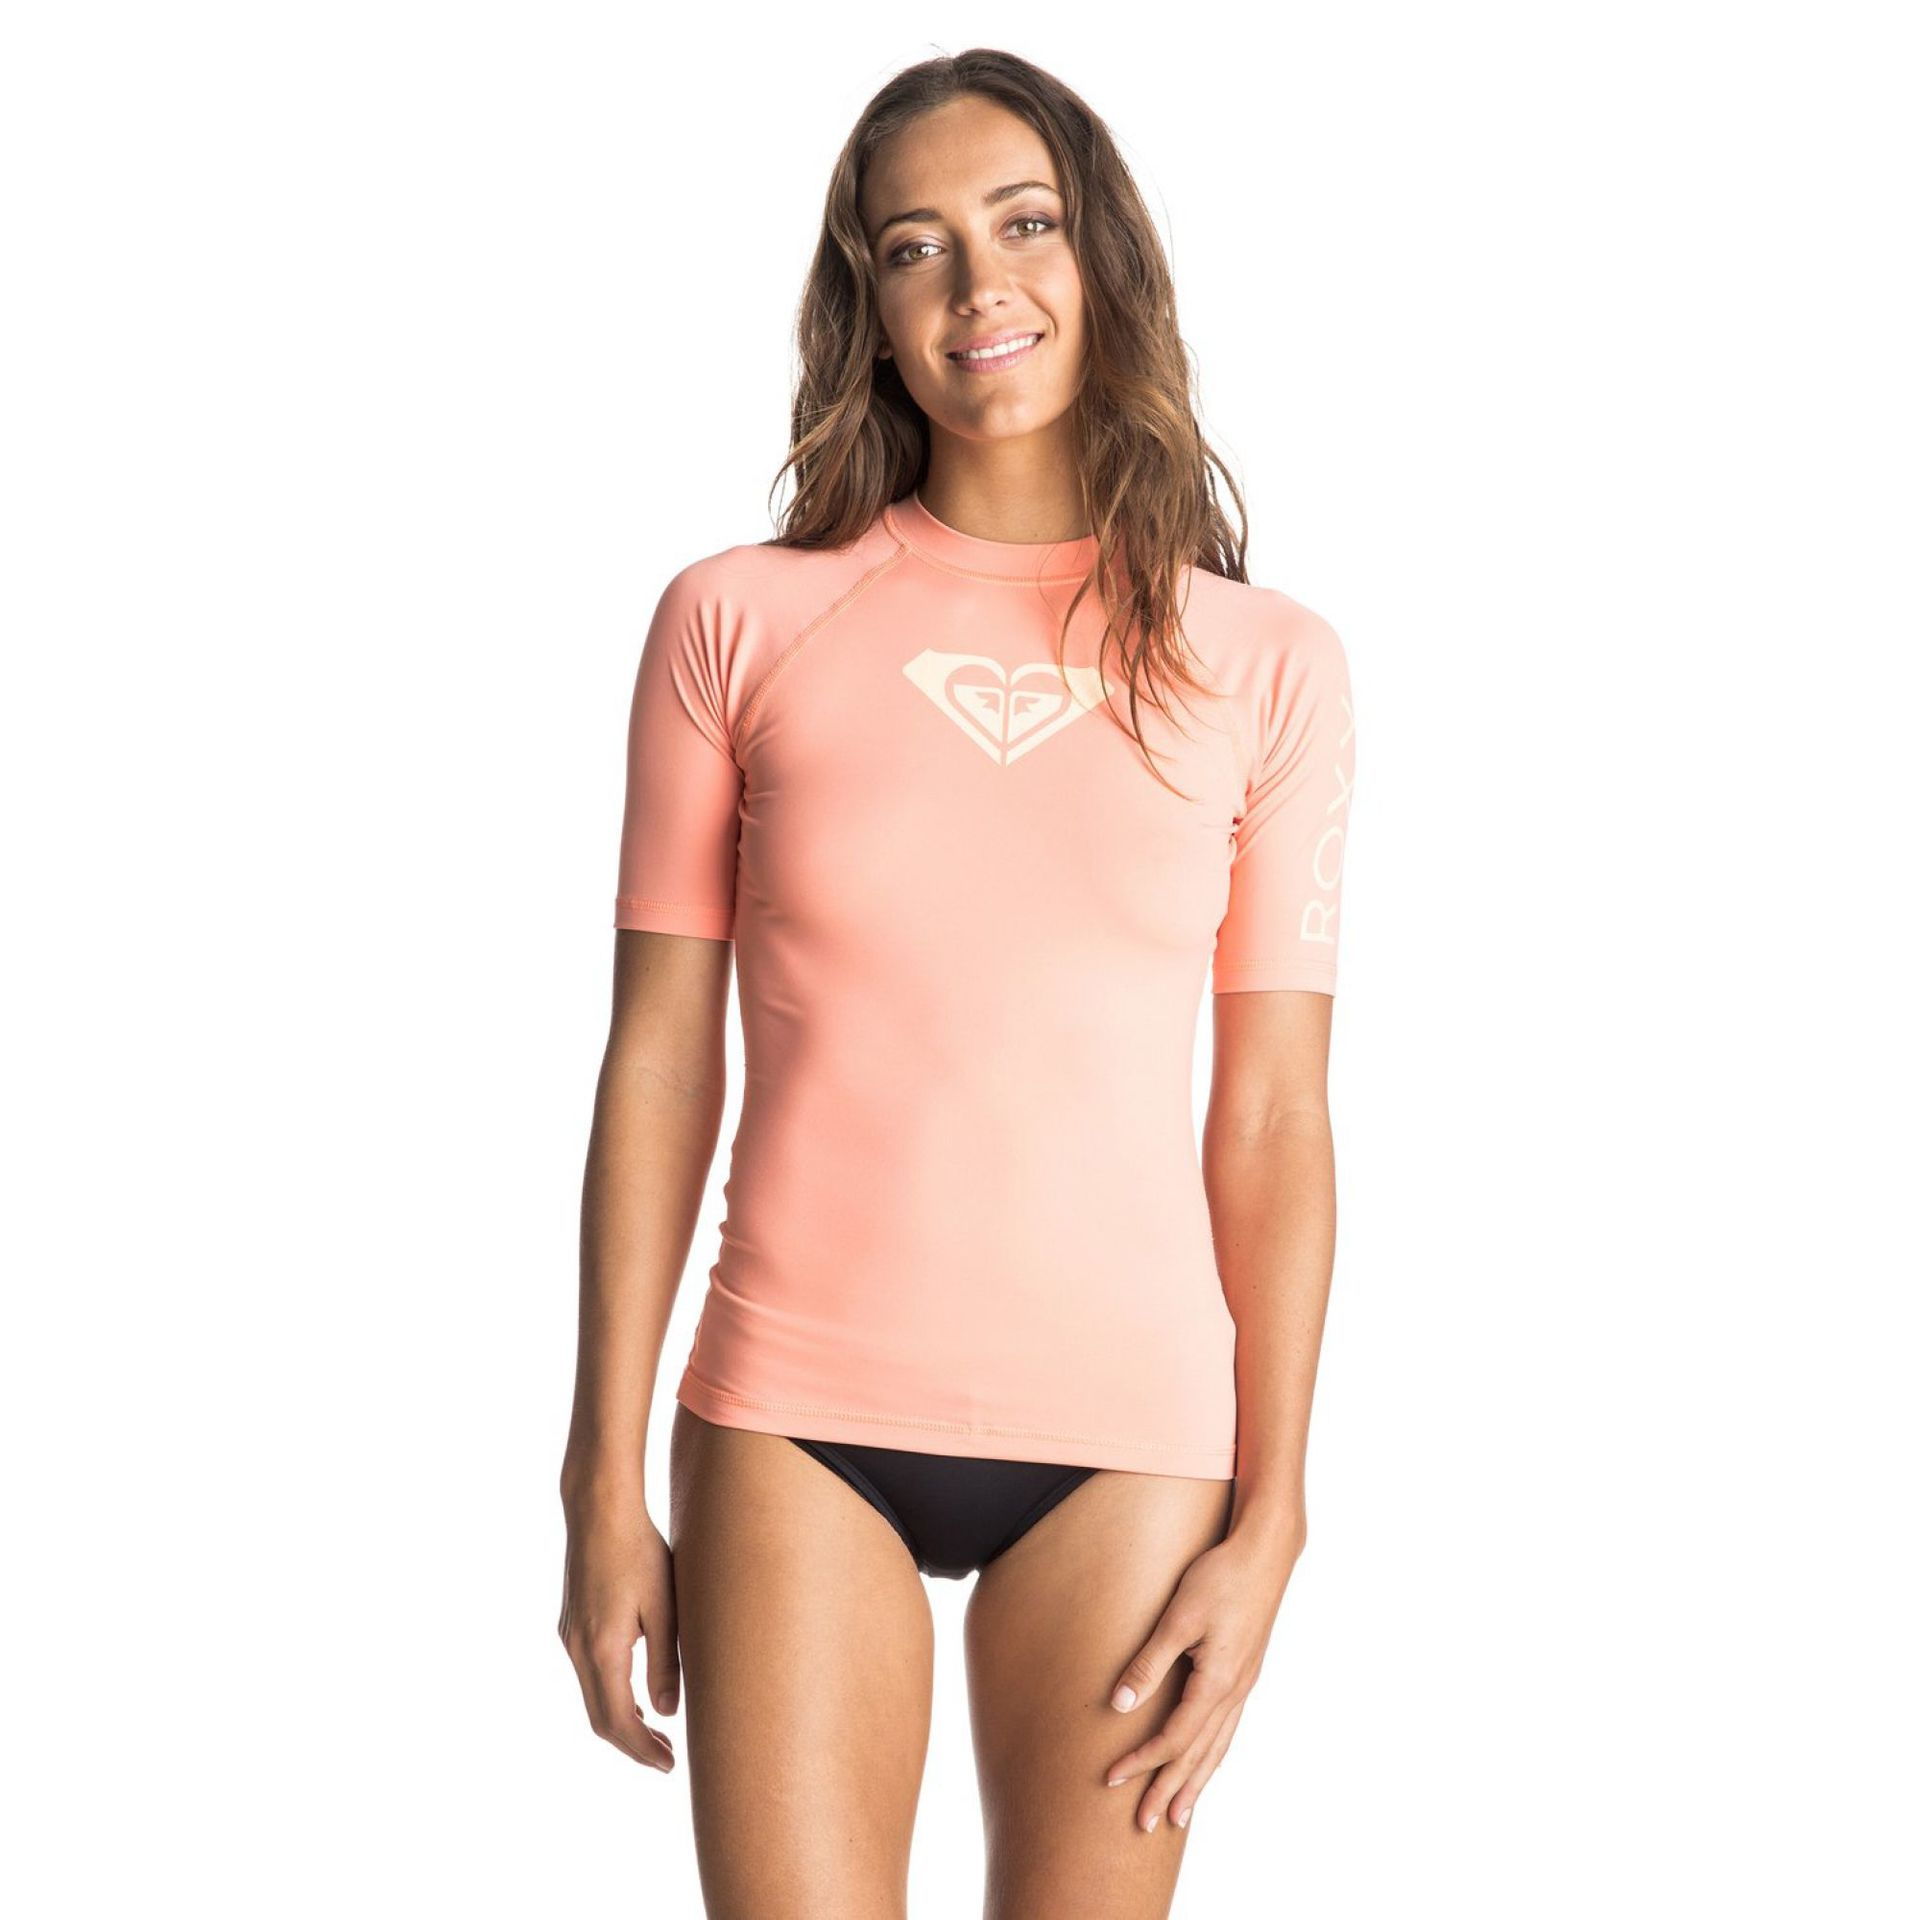 LYCRA ROXY WHOLE HEARTED SUNKISSED CORAL